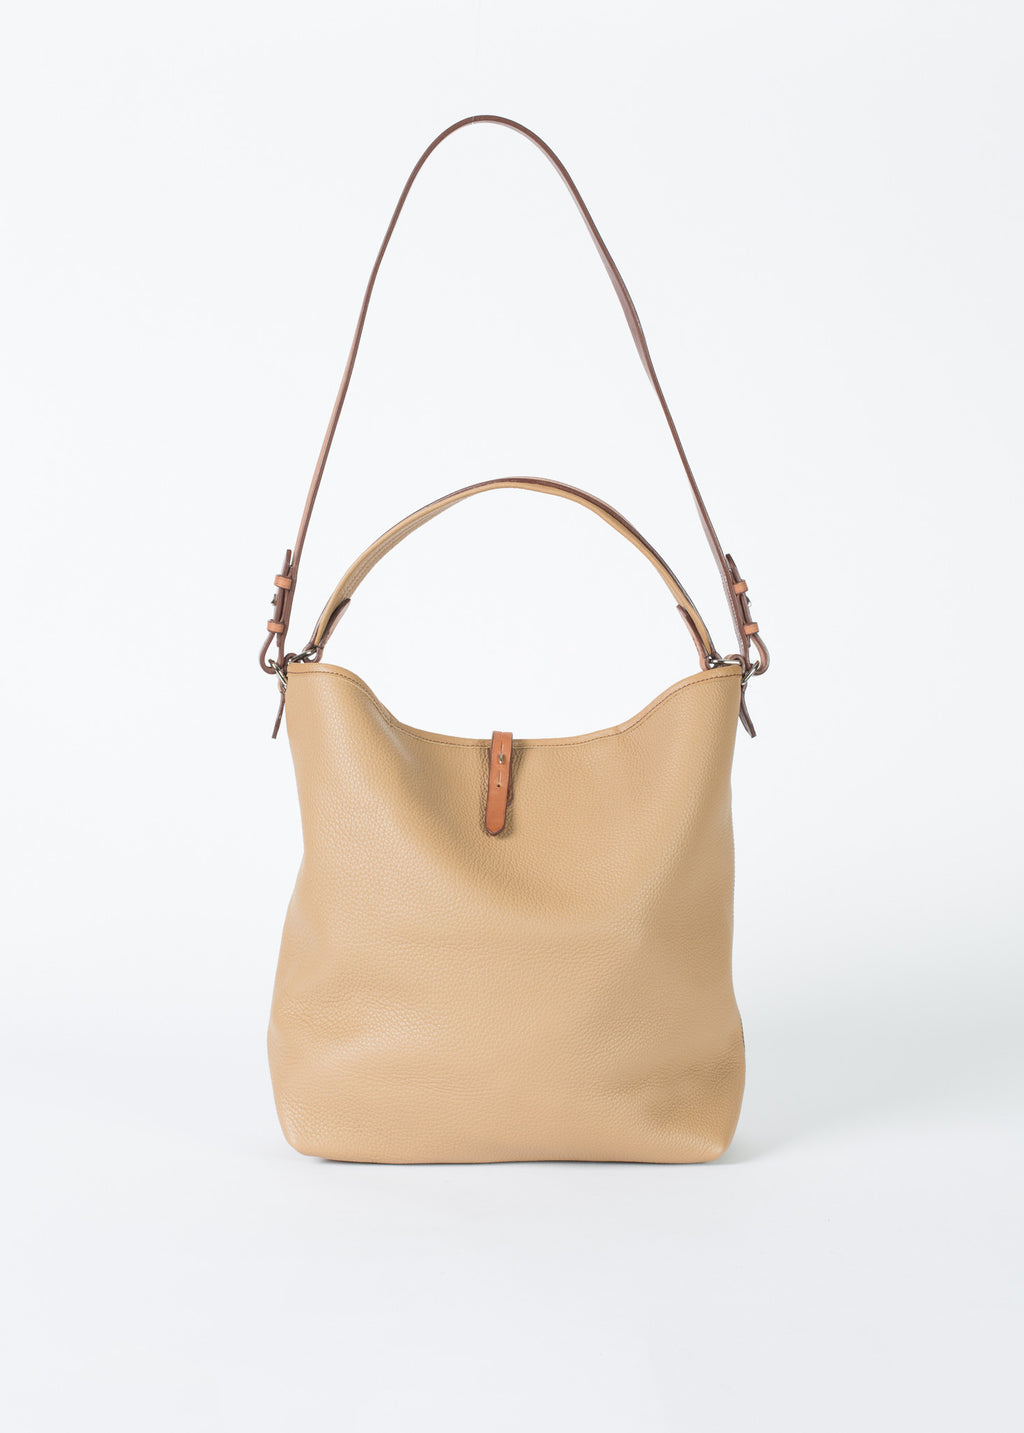 58d8f30fbd Pretty Grooming Bag in Camel Tan Leather by Guibert Handbags – Baby    Company